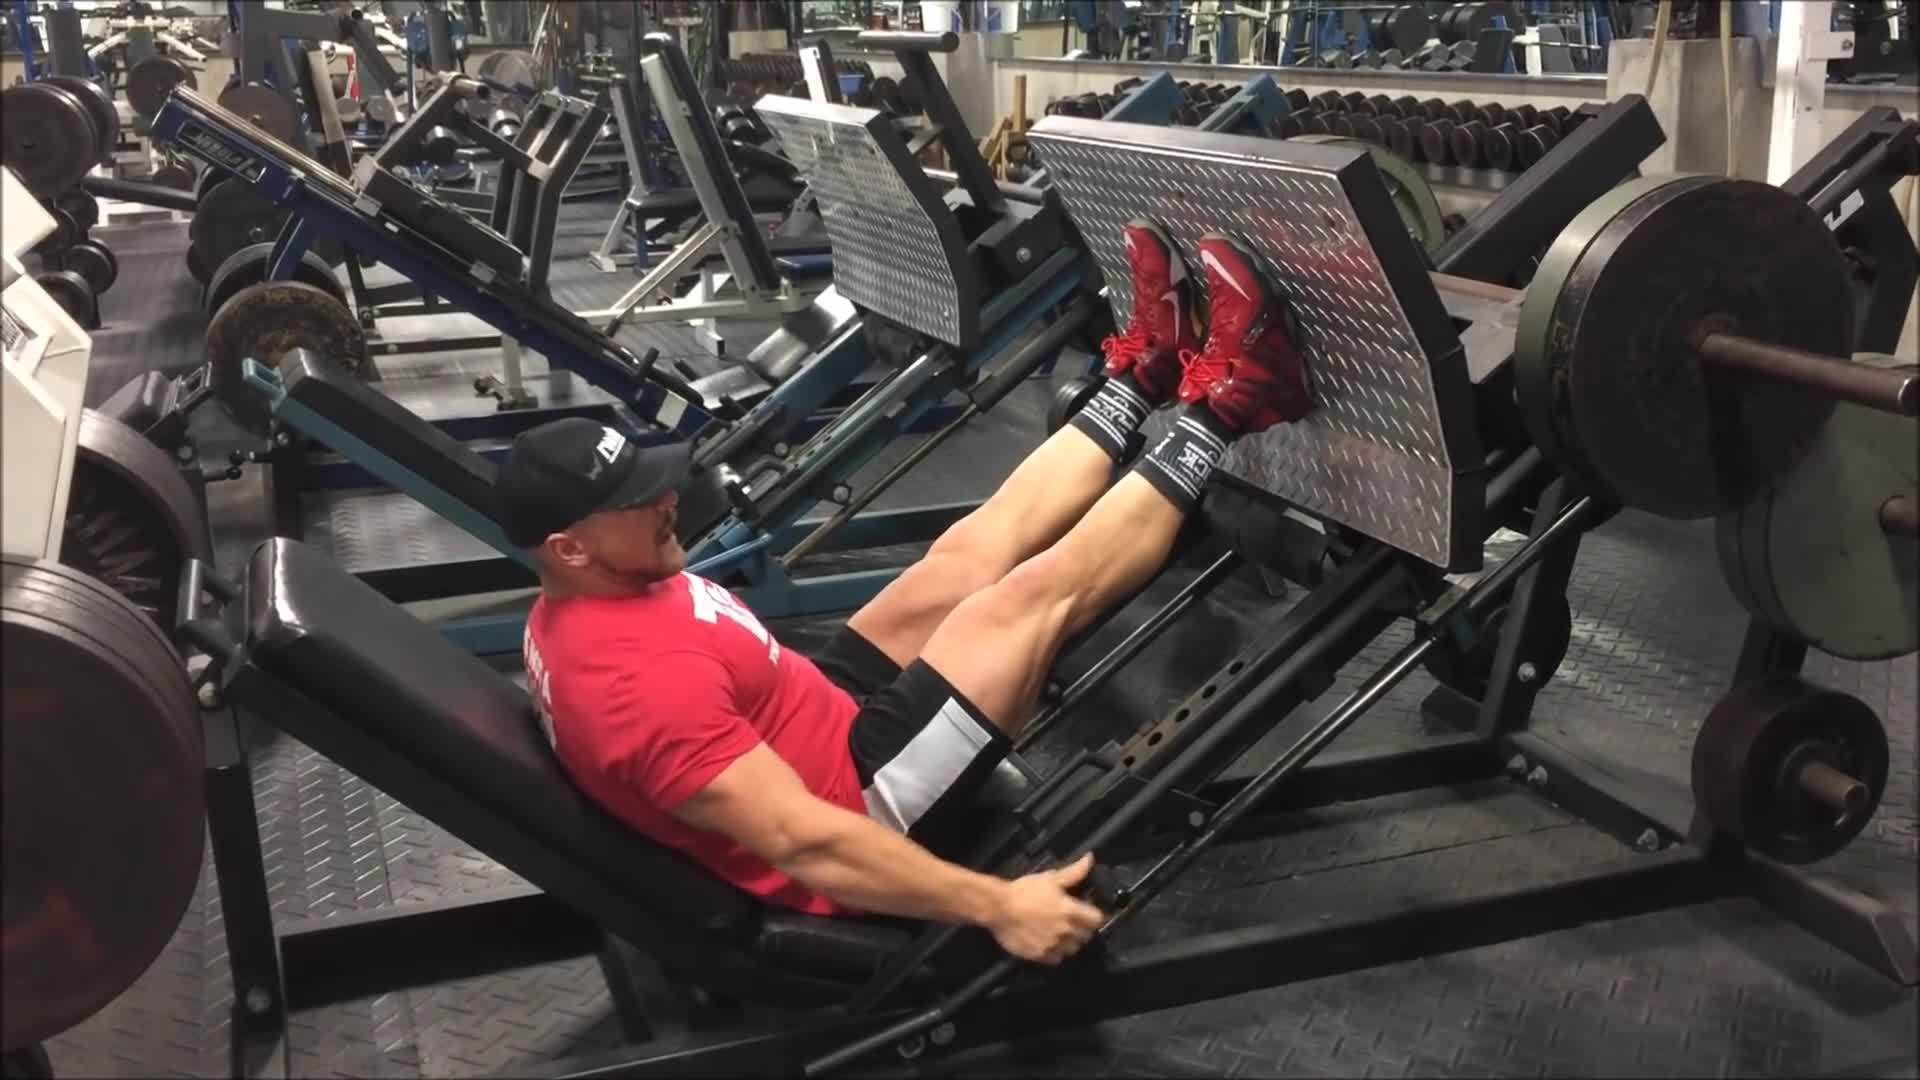 best work out, muscle and fitness, work out routines, 45 Degree Leg Press Machine GIFs